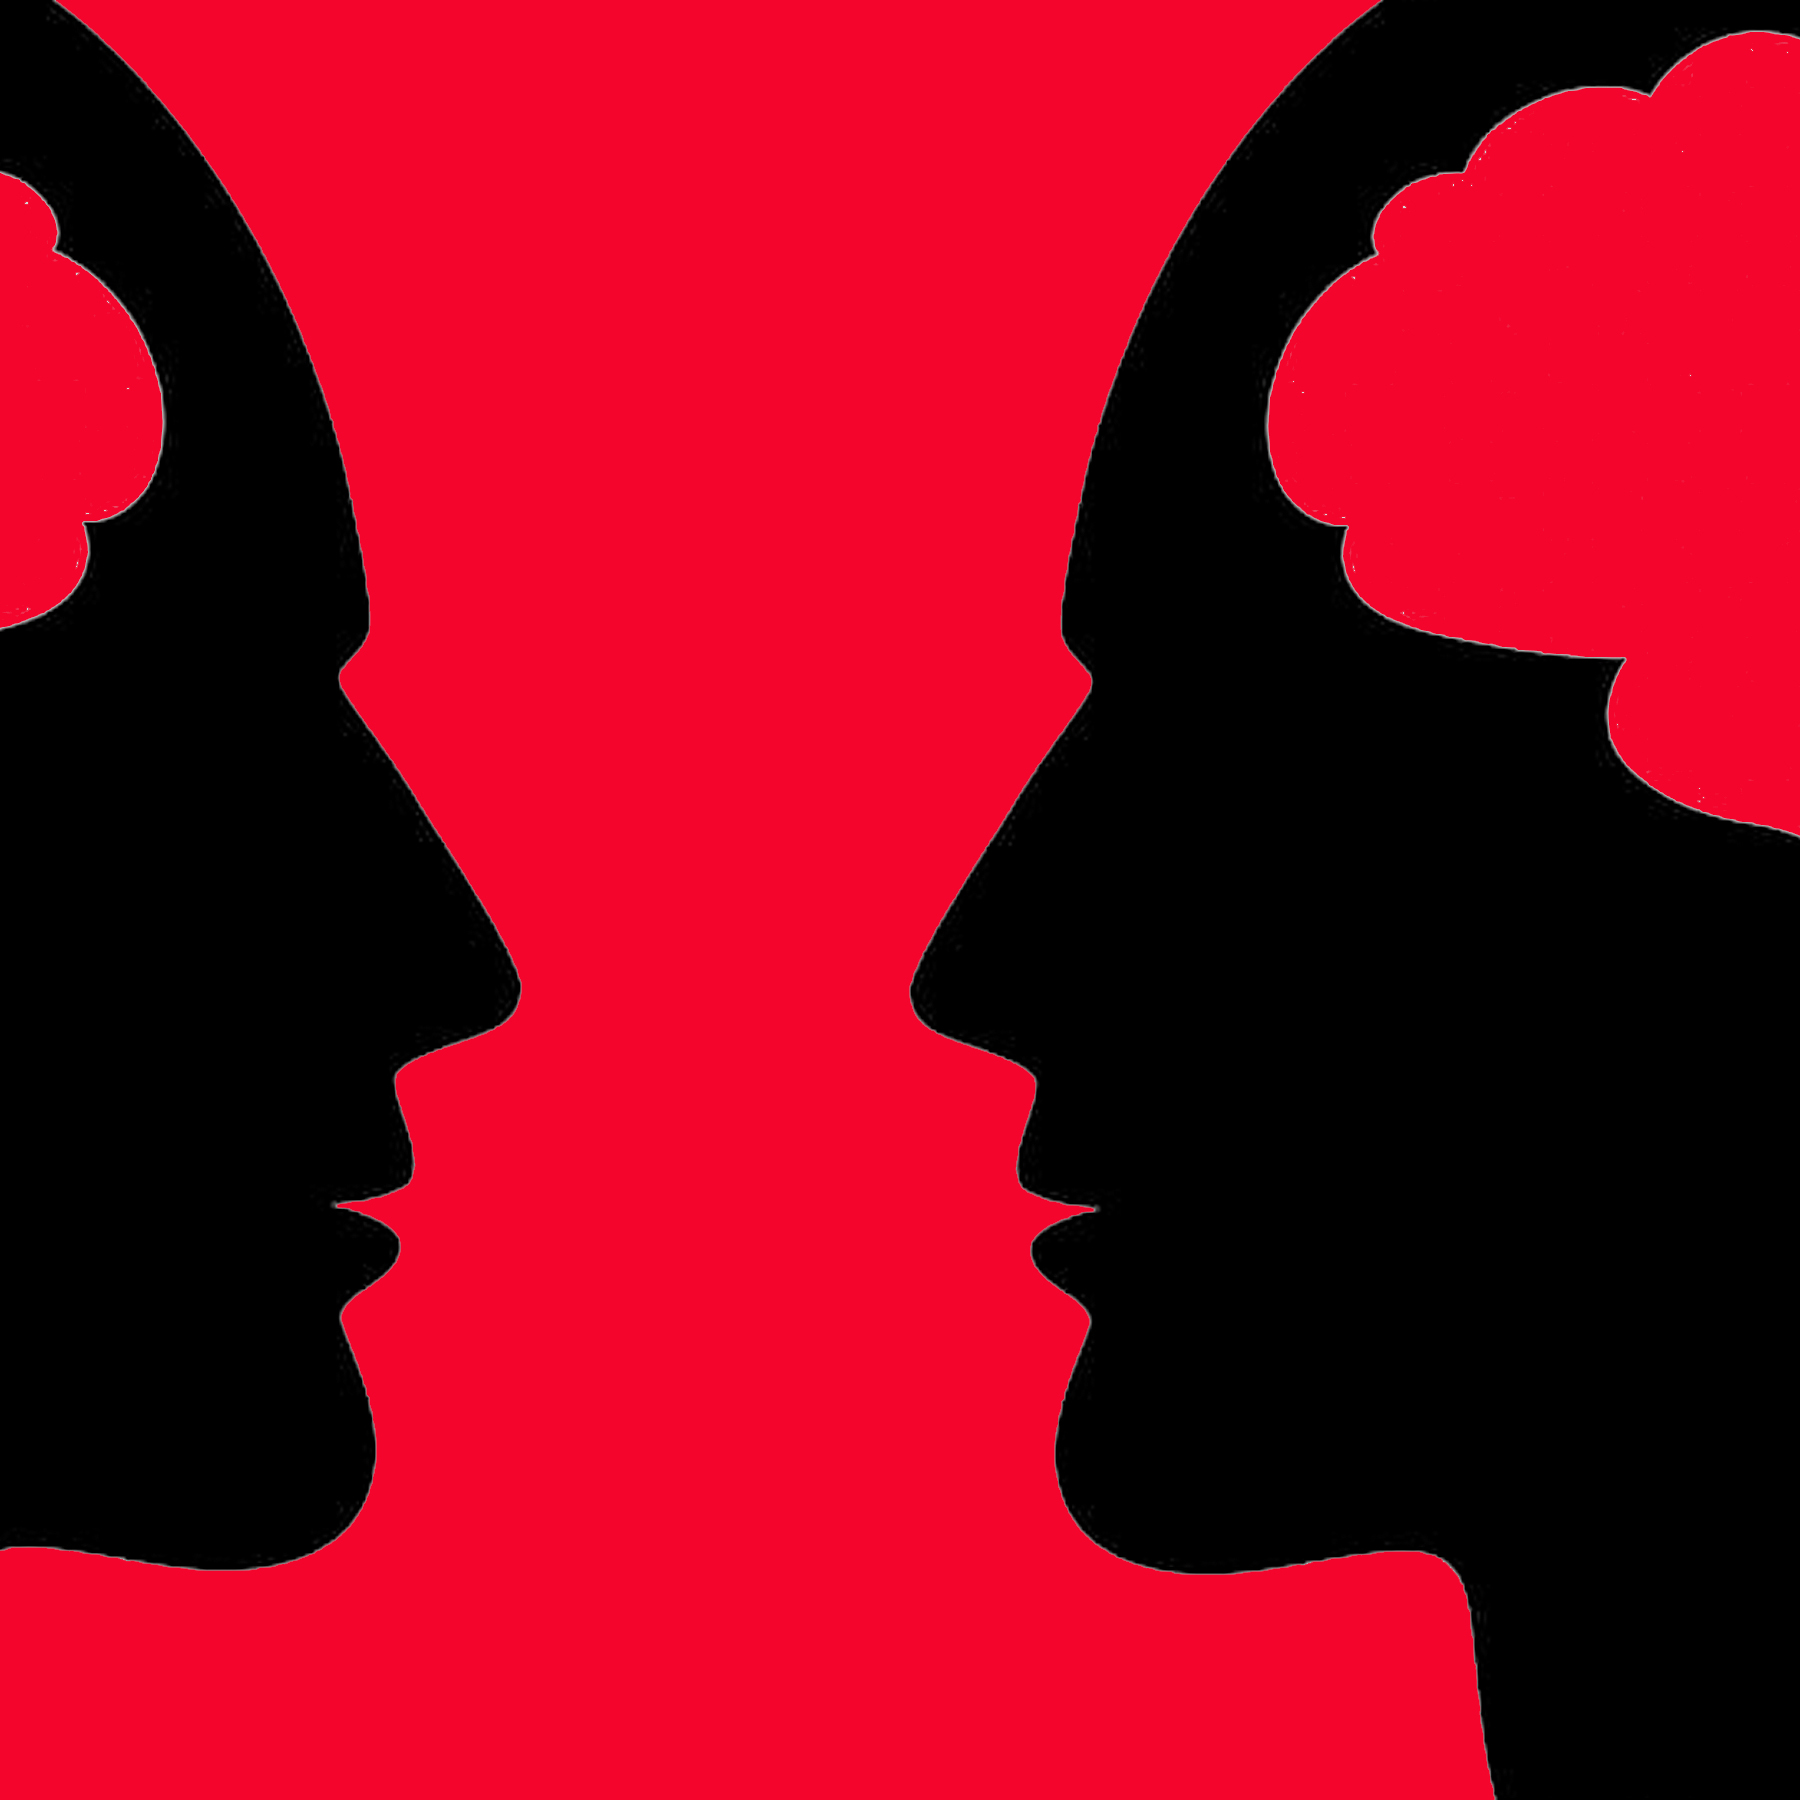 Profile of two human heads face inwards